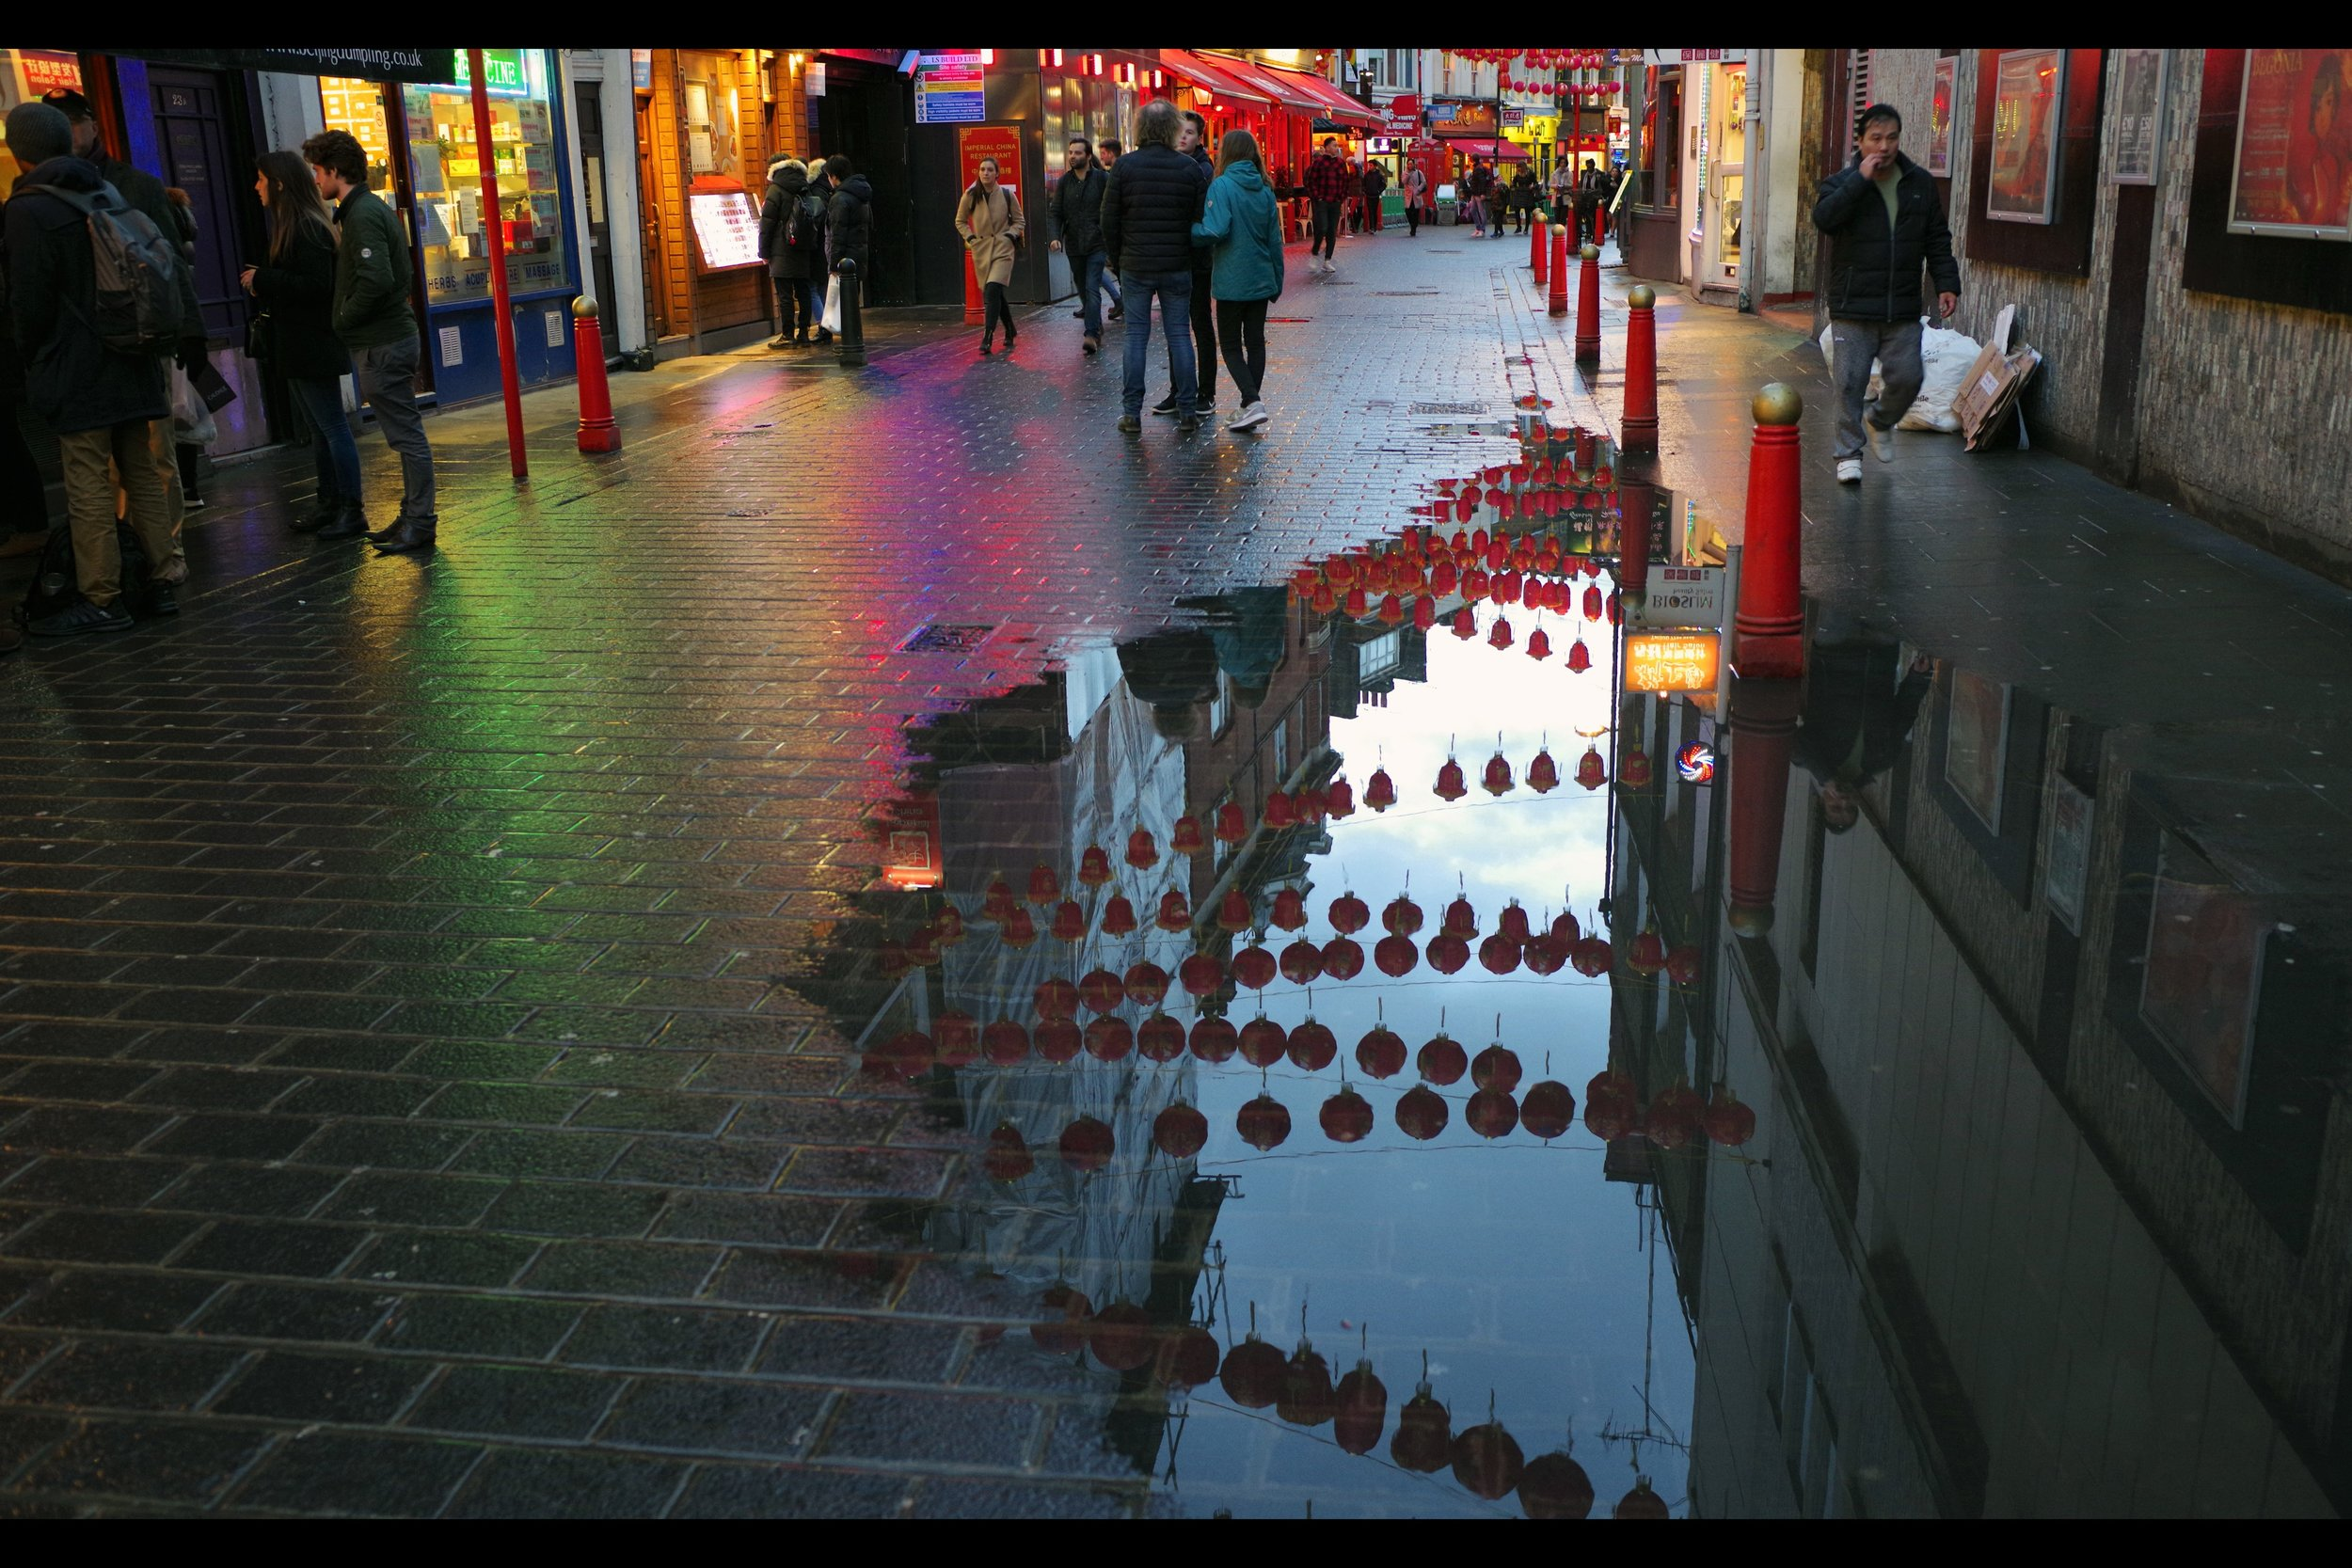 I can always take photos of neon and wet pavement in Chinatown, I guess.....